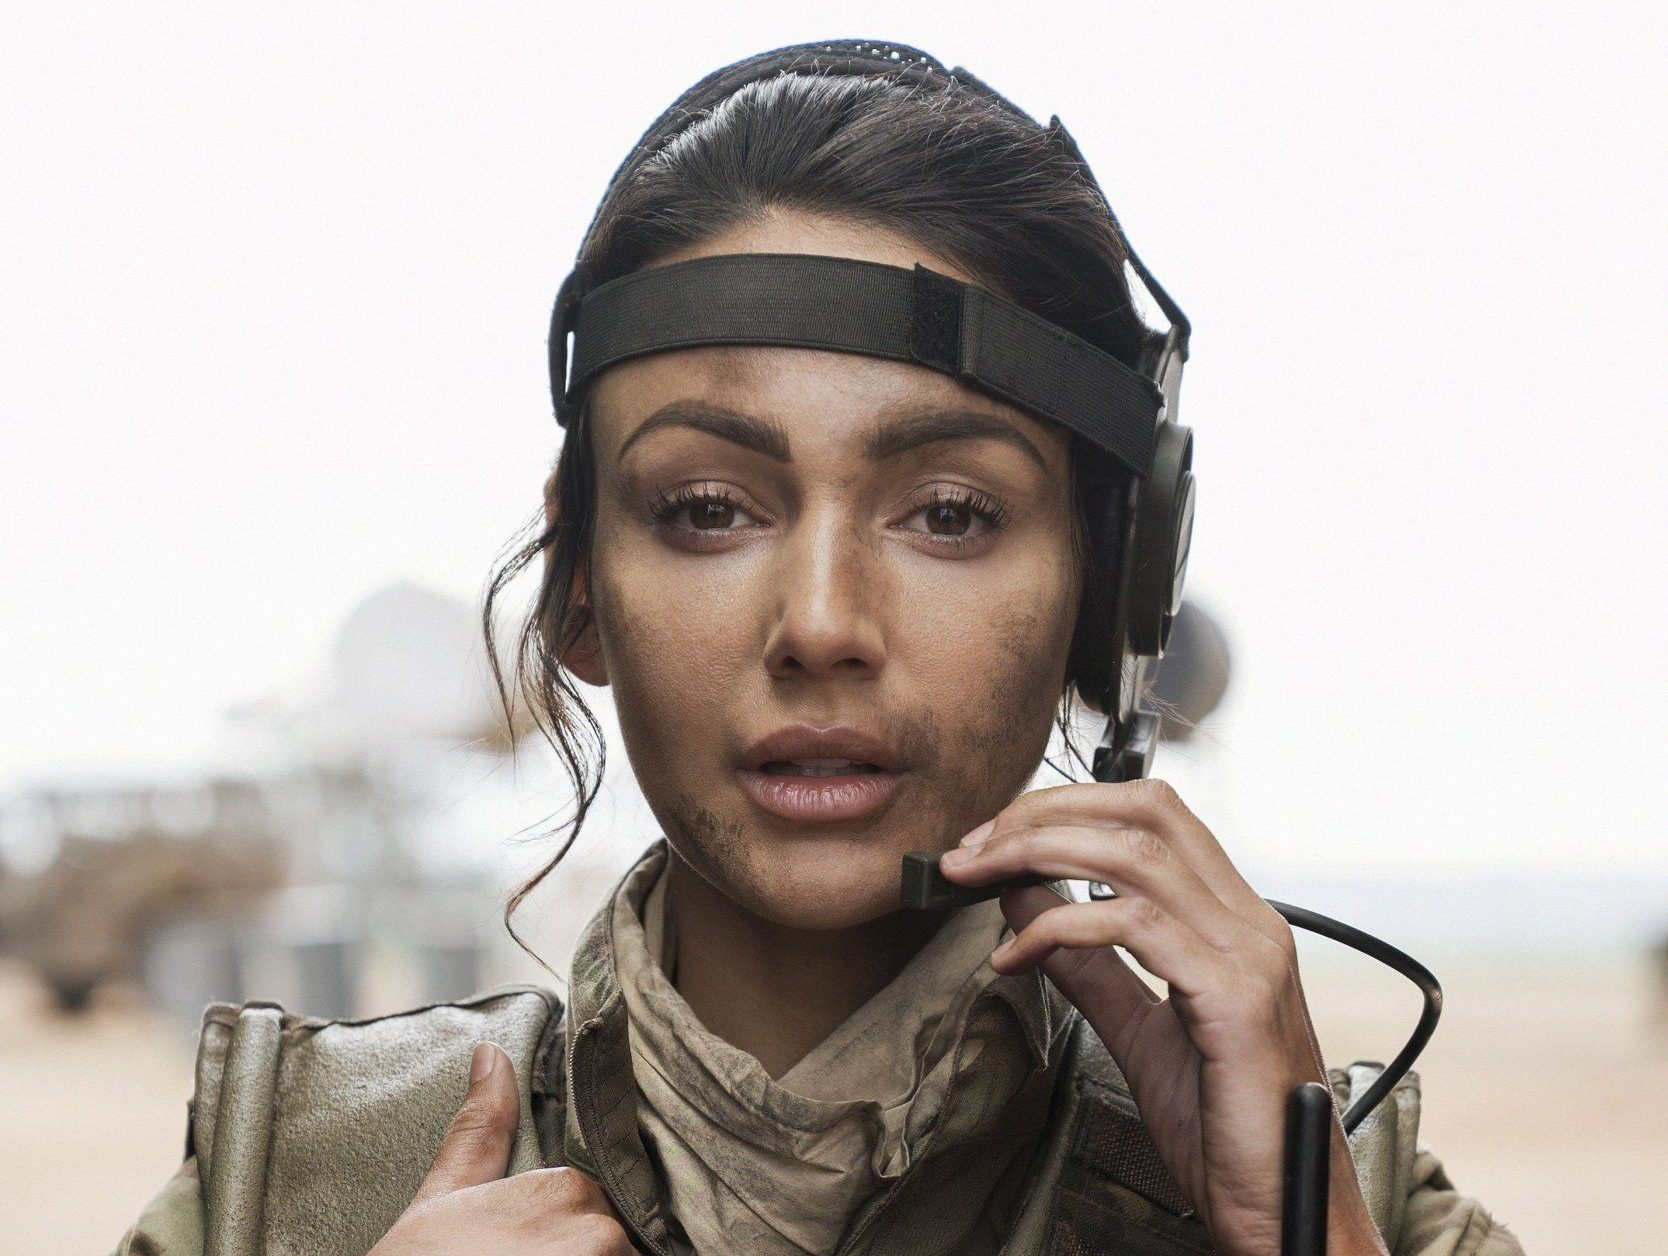 Michelle Keegan has signed up for another season of Our Girl so we can all get over that cliffhanger